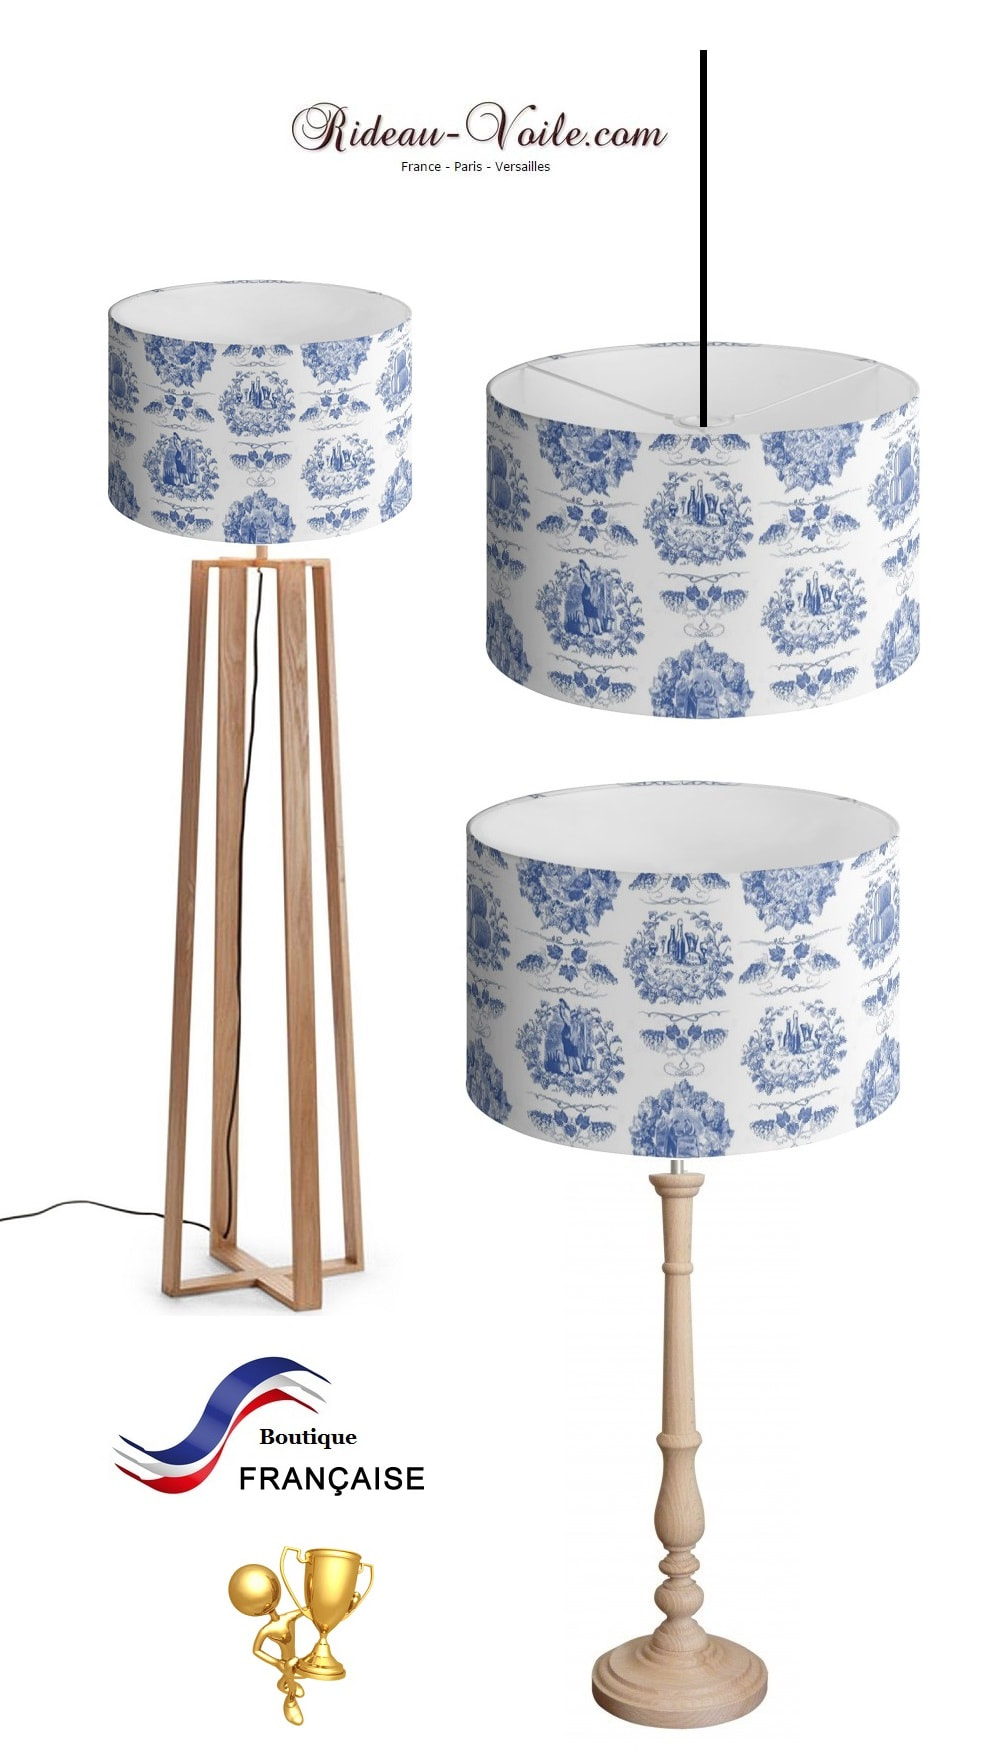 Toile de jouy tissu motif imprimé ameublement décoration tapisserie linge de maison housse coussin couette luxe lit fabric pattern printed home furnishing decoration tapestry linens cover cushion quilt luxury upholstery lampshade abat-jour lampe luminaire